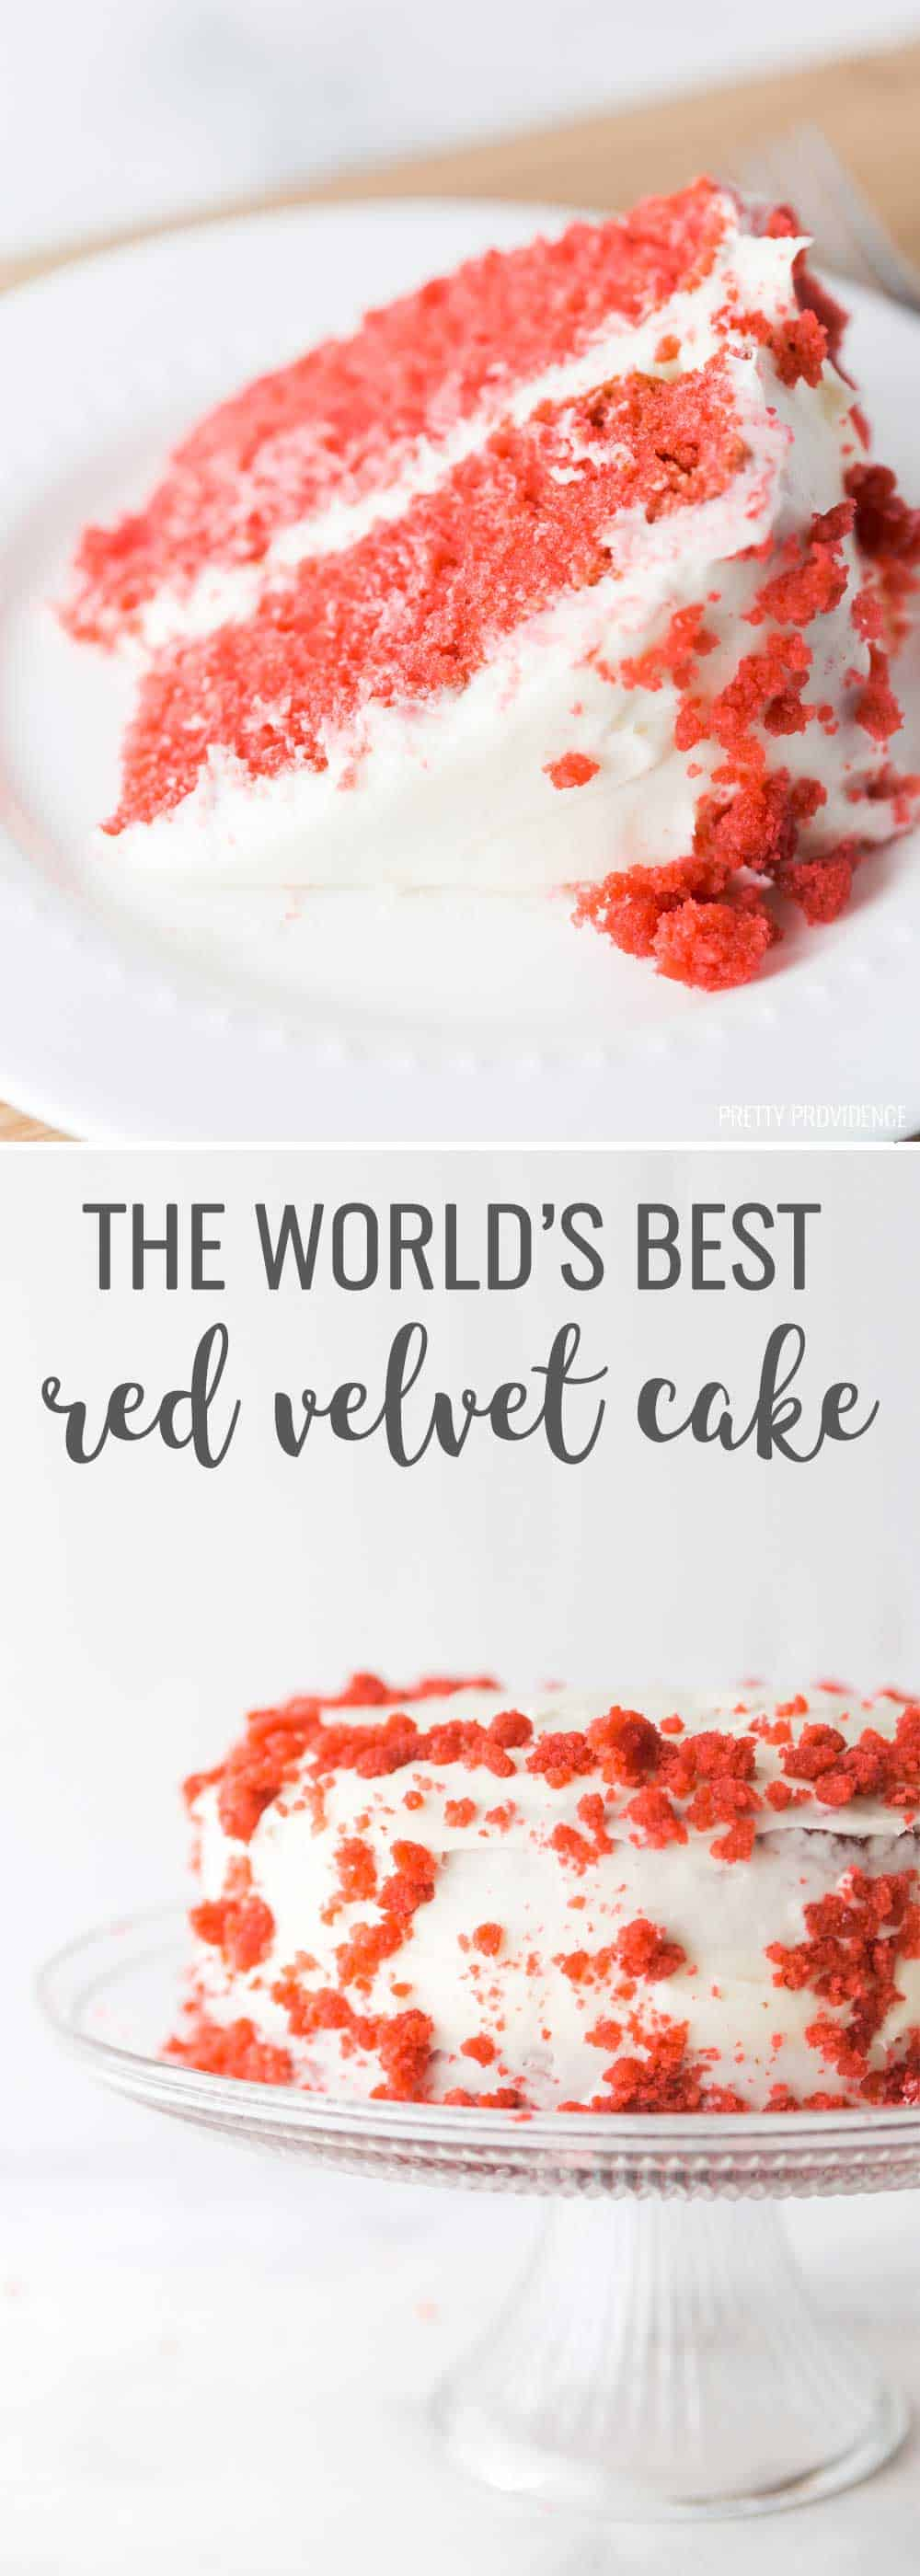 No lie, this is the best red velvet cake I have ever had. Moist & unbelievably delicious, everyone will be asking you for this easy red velvet cake recipe.  #redvelvetcake #easyredvelvetcake #redvelvetcakerecipe #redvelvet